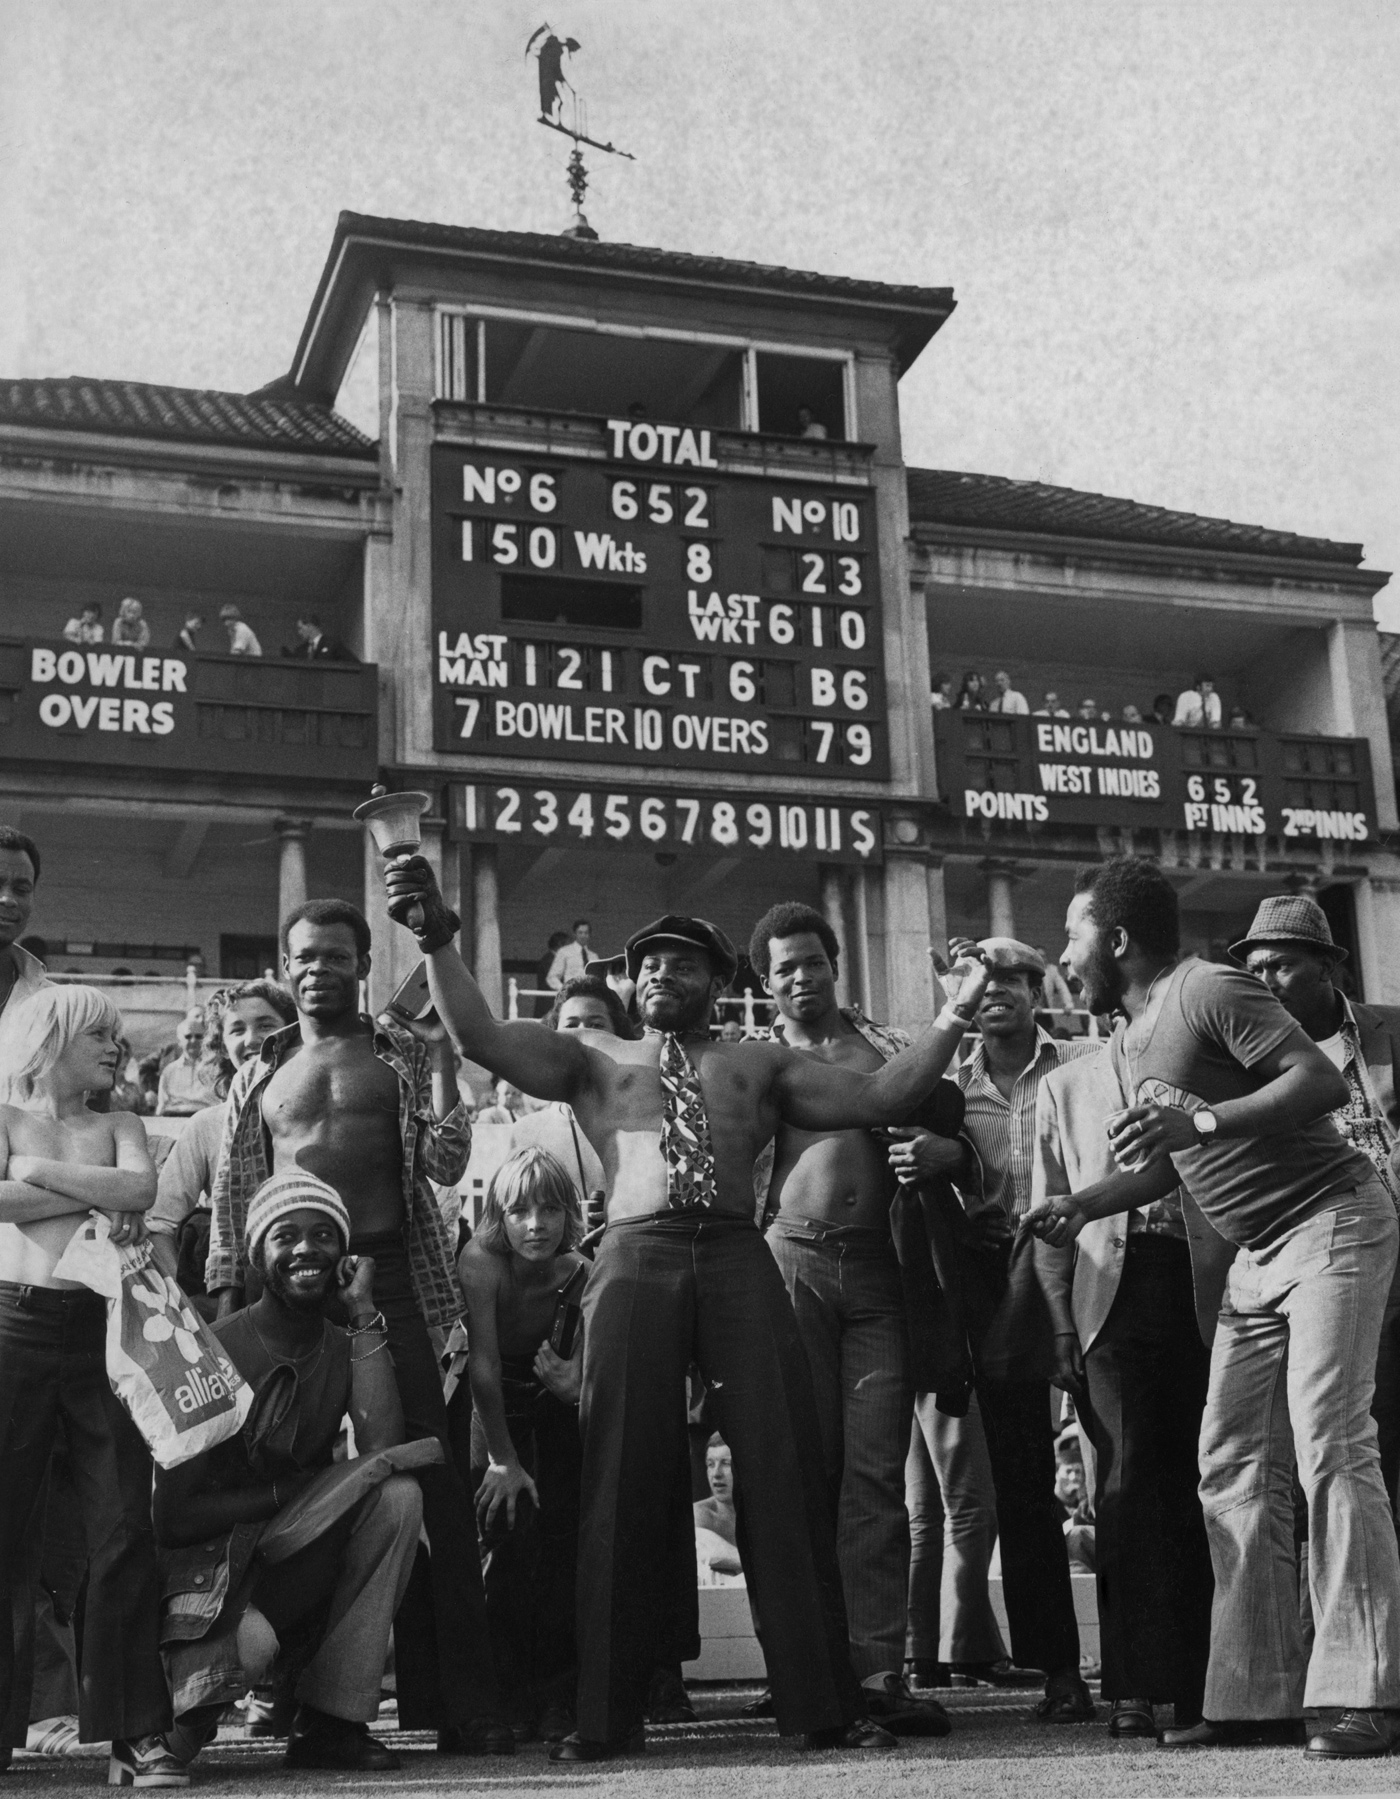 Groovy times: West Indian fans glory in their team's deeds at Lord's in 1973